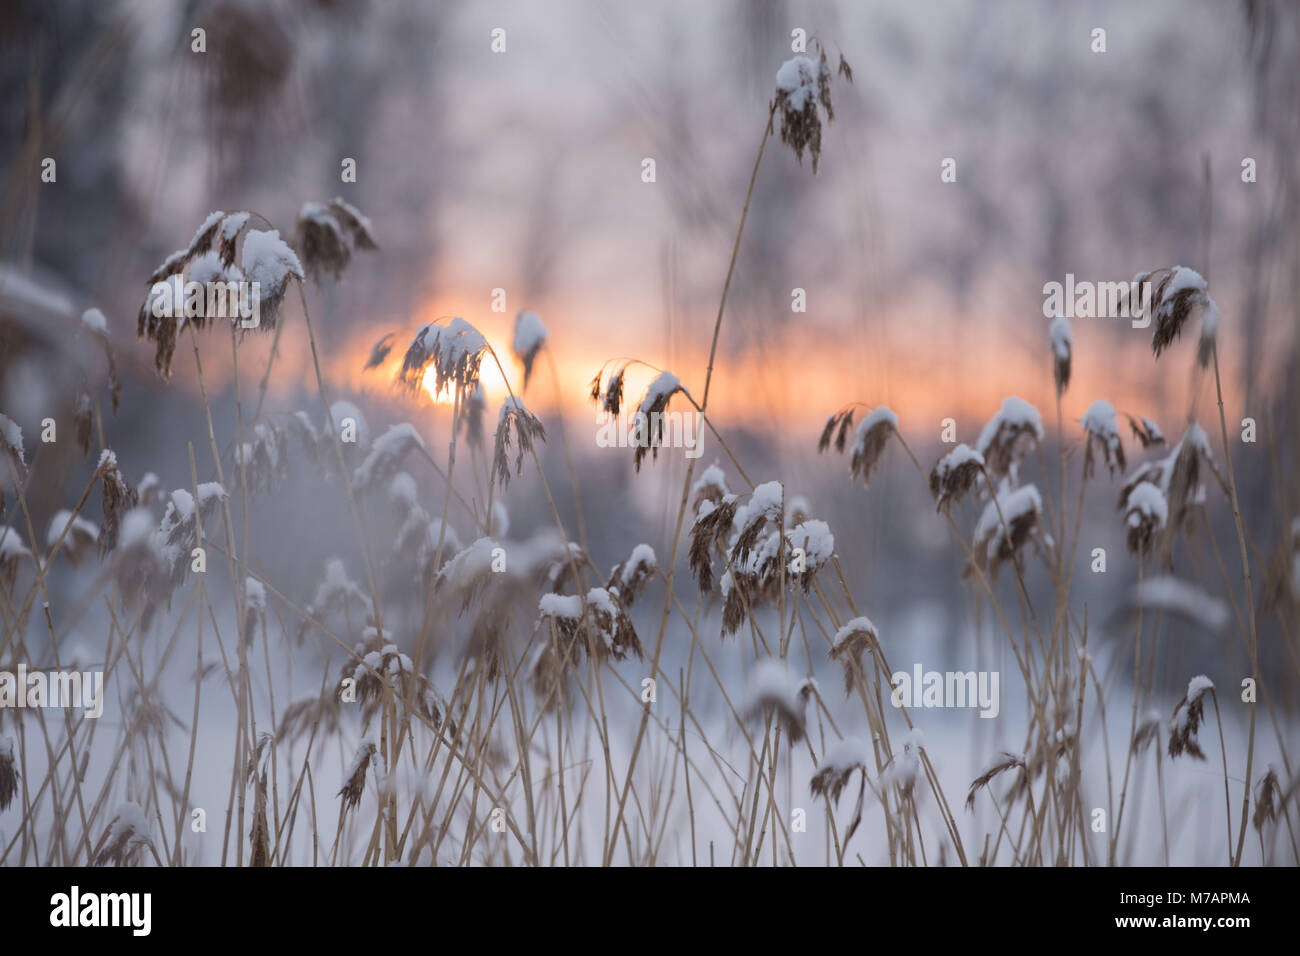 Snowy Reed Silhouettes Against Winter Sunset, blurred background - Stock Image